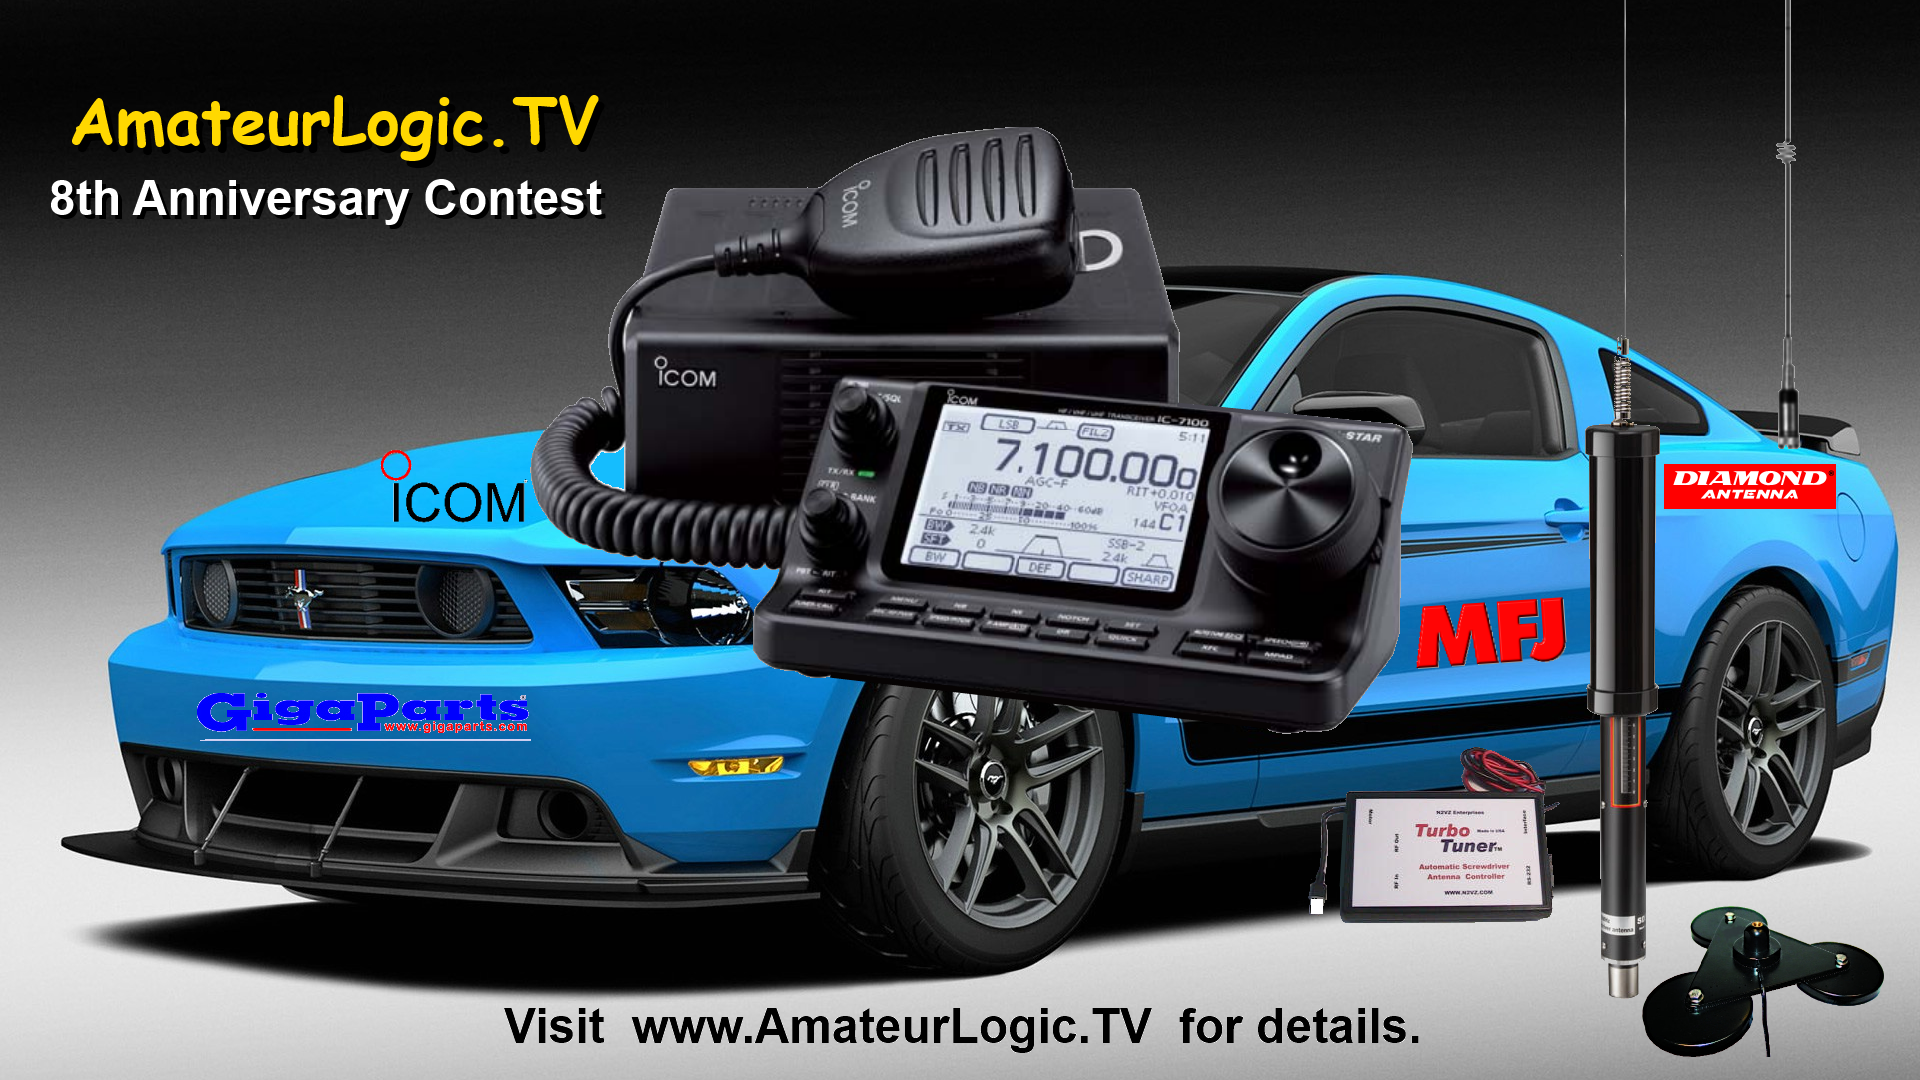 AmateurLogic.TV 8th Anniversary Contest